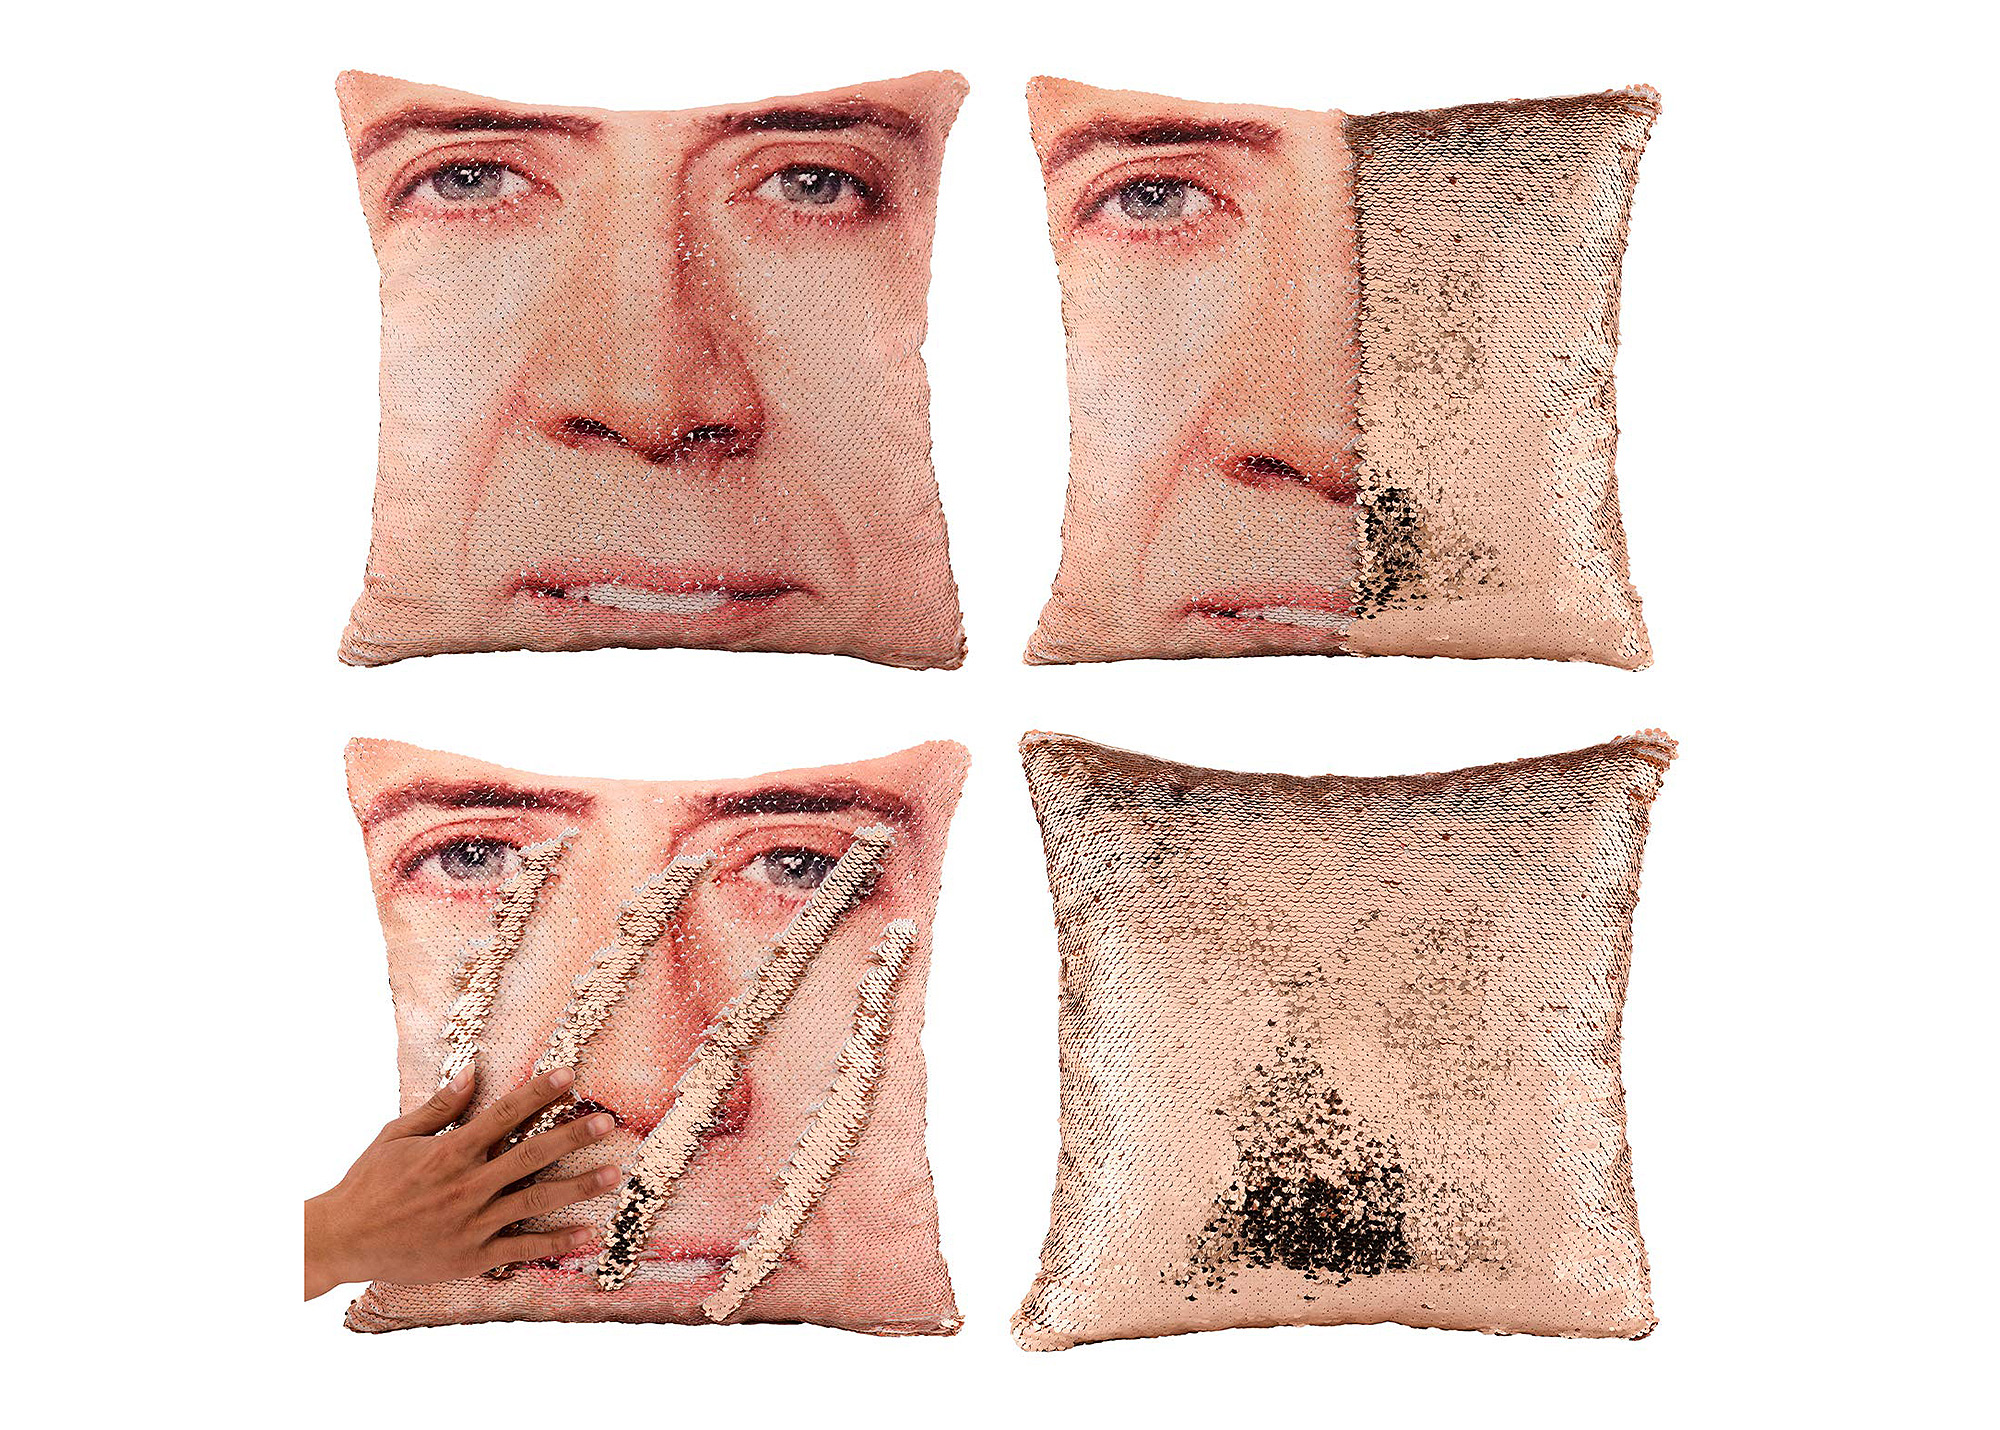 nicolas cage pillow